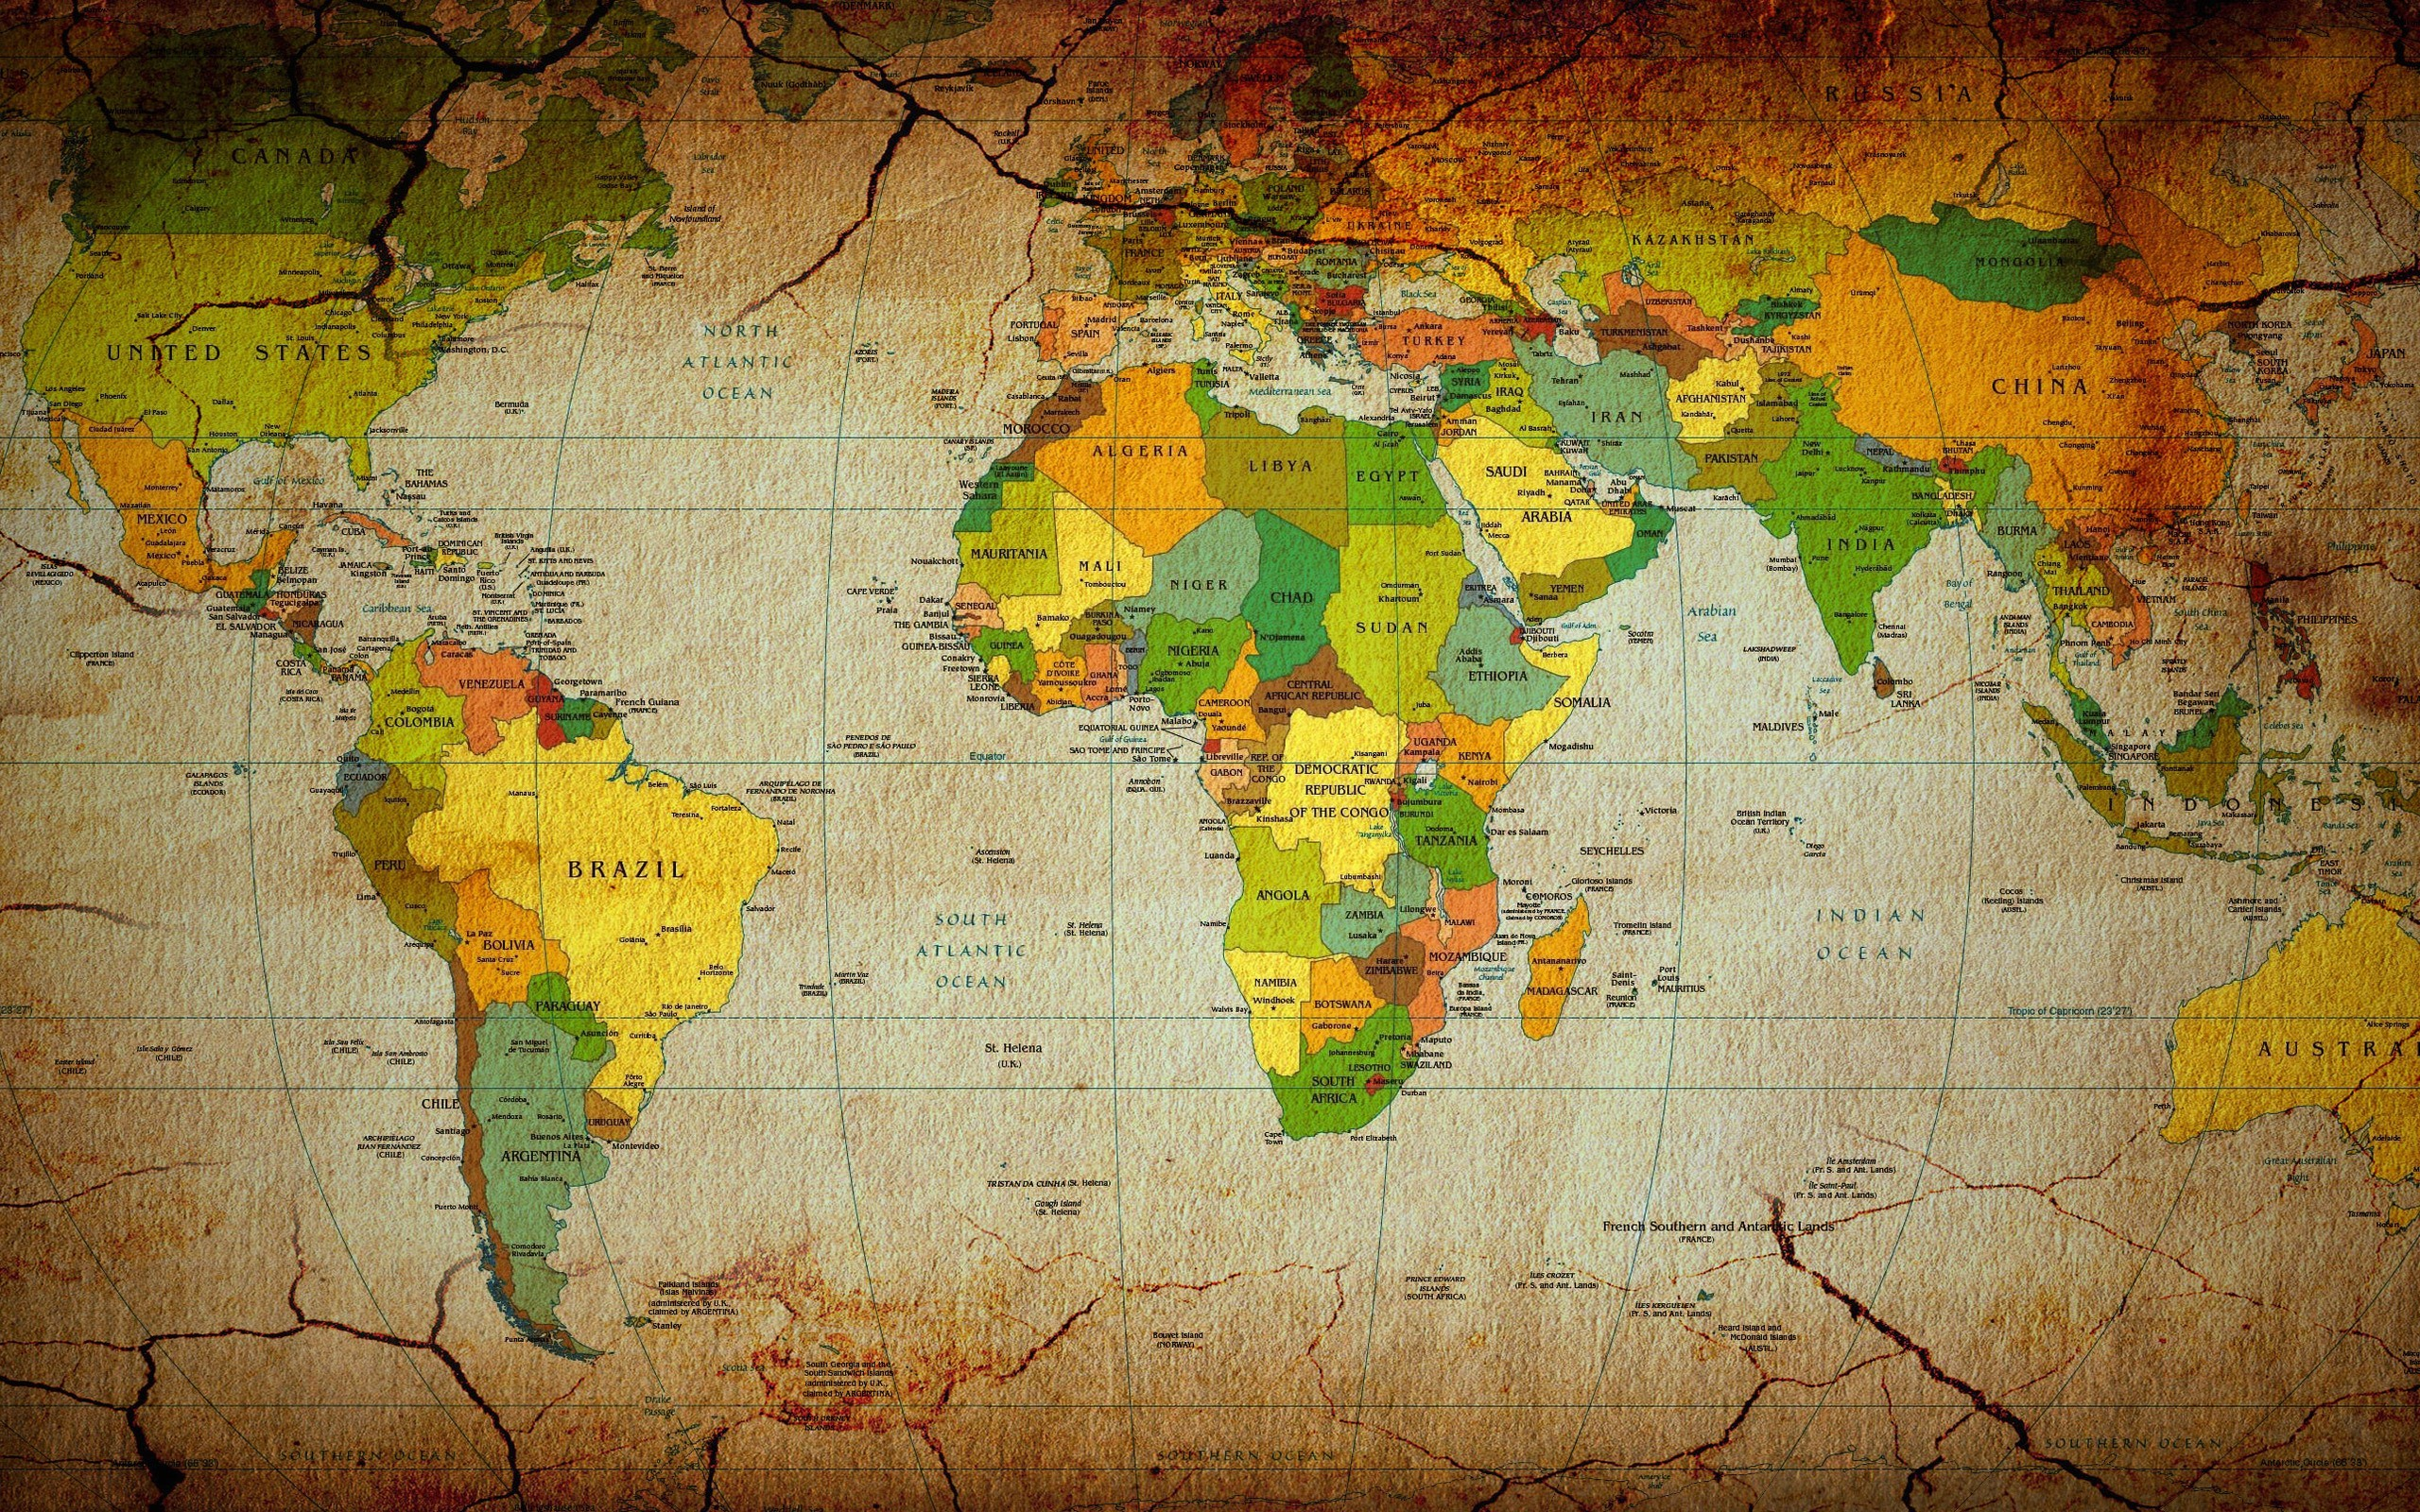 World map desktop wallpaper 54 images 2560x1600 world map wallpaper 6254 gumiabroncs Image collections